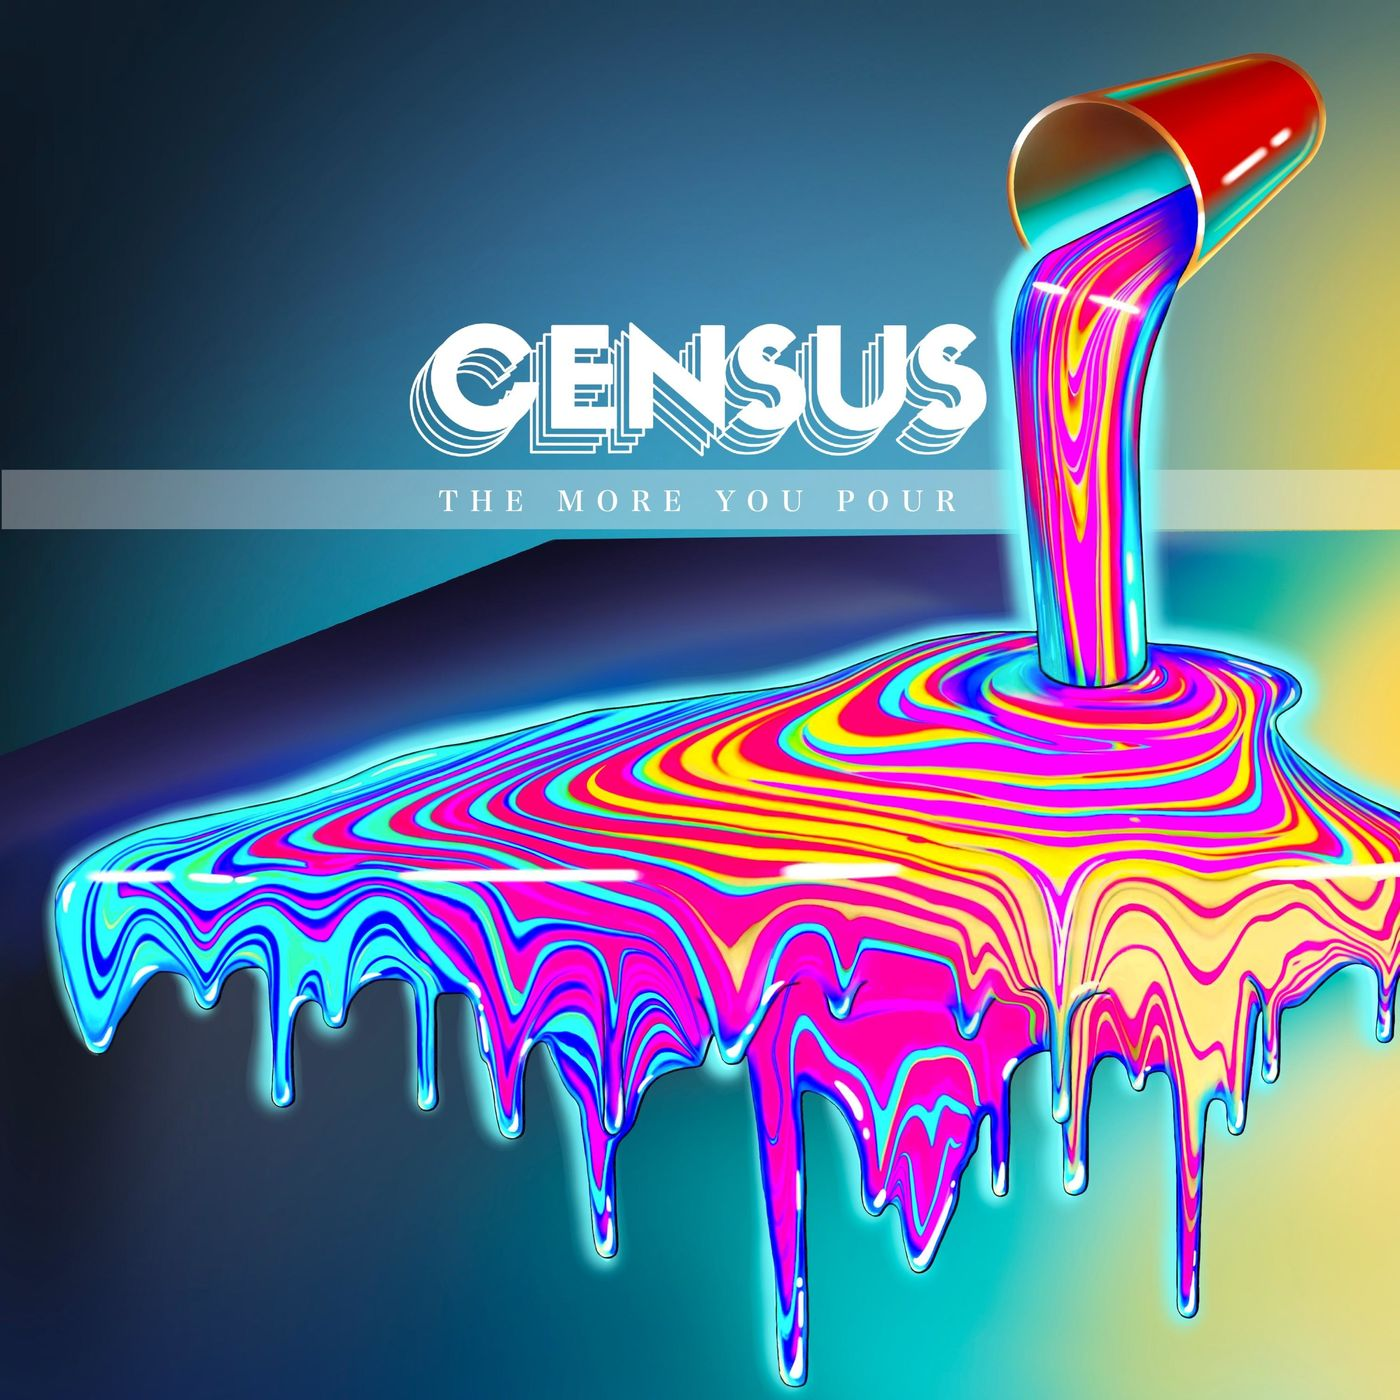 Census - The More You Pour [single] (2019)